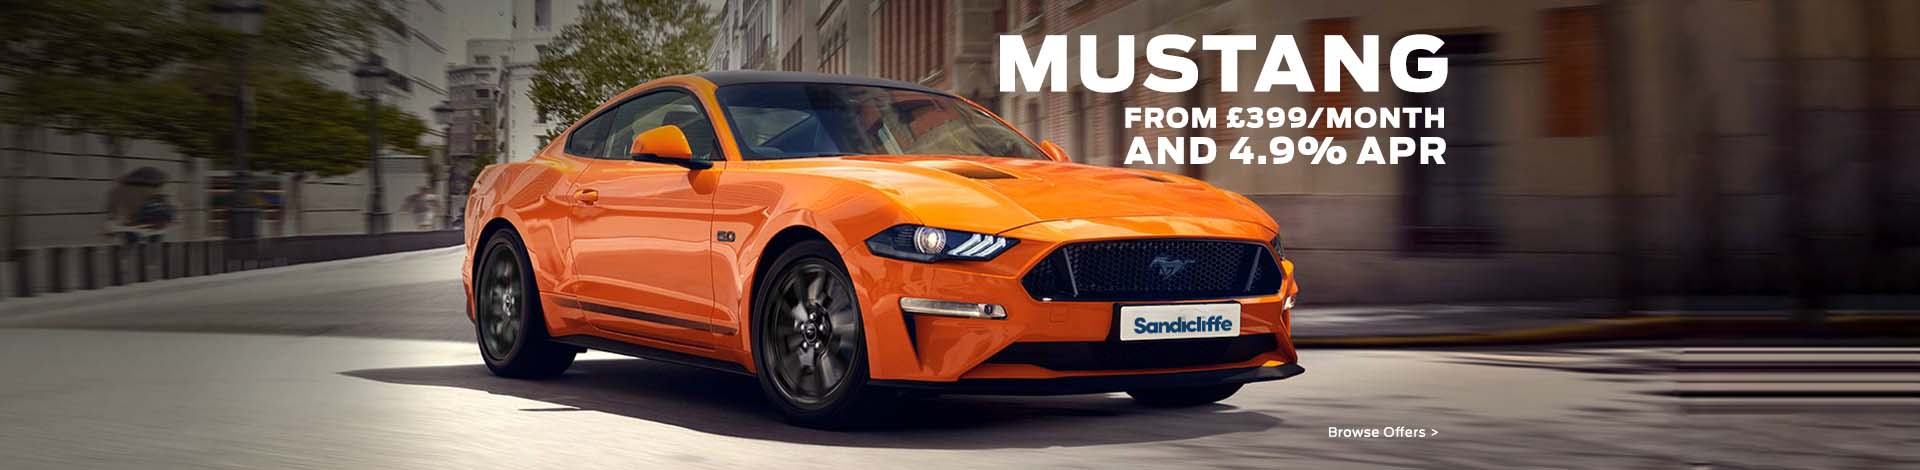 Ford Mustang Page